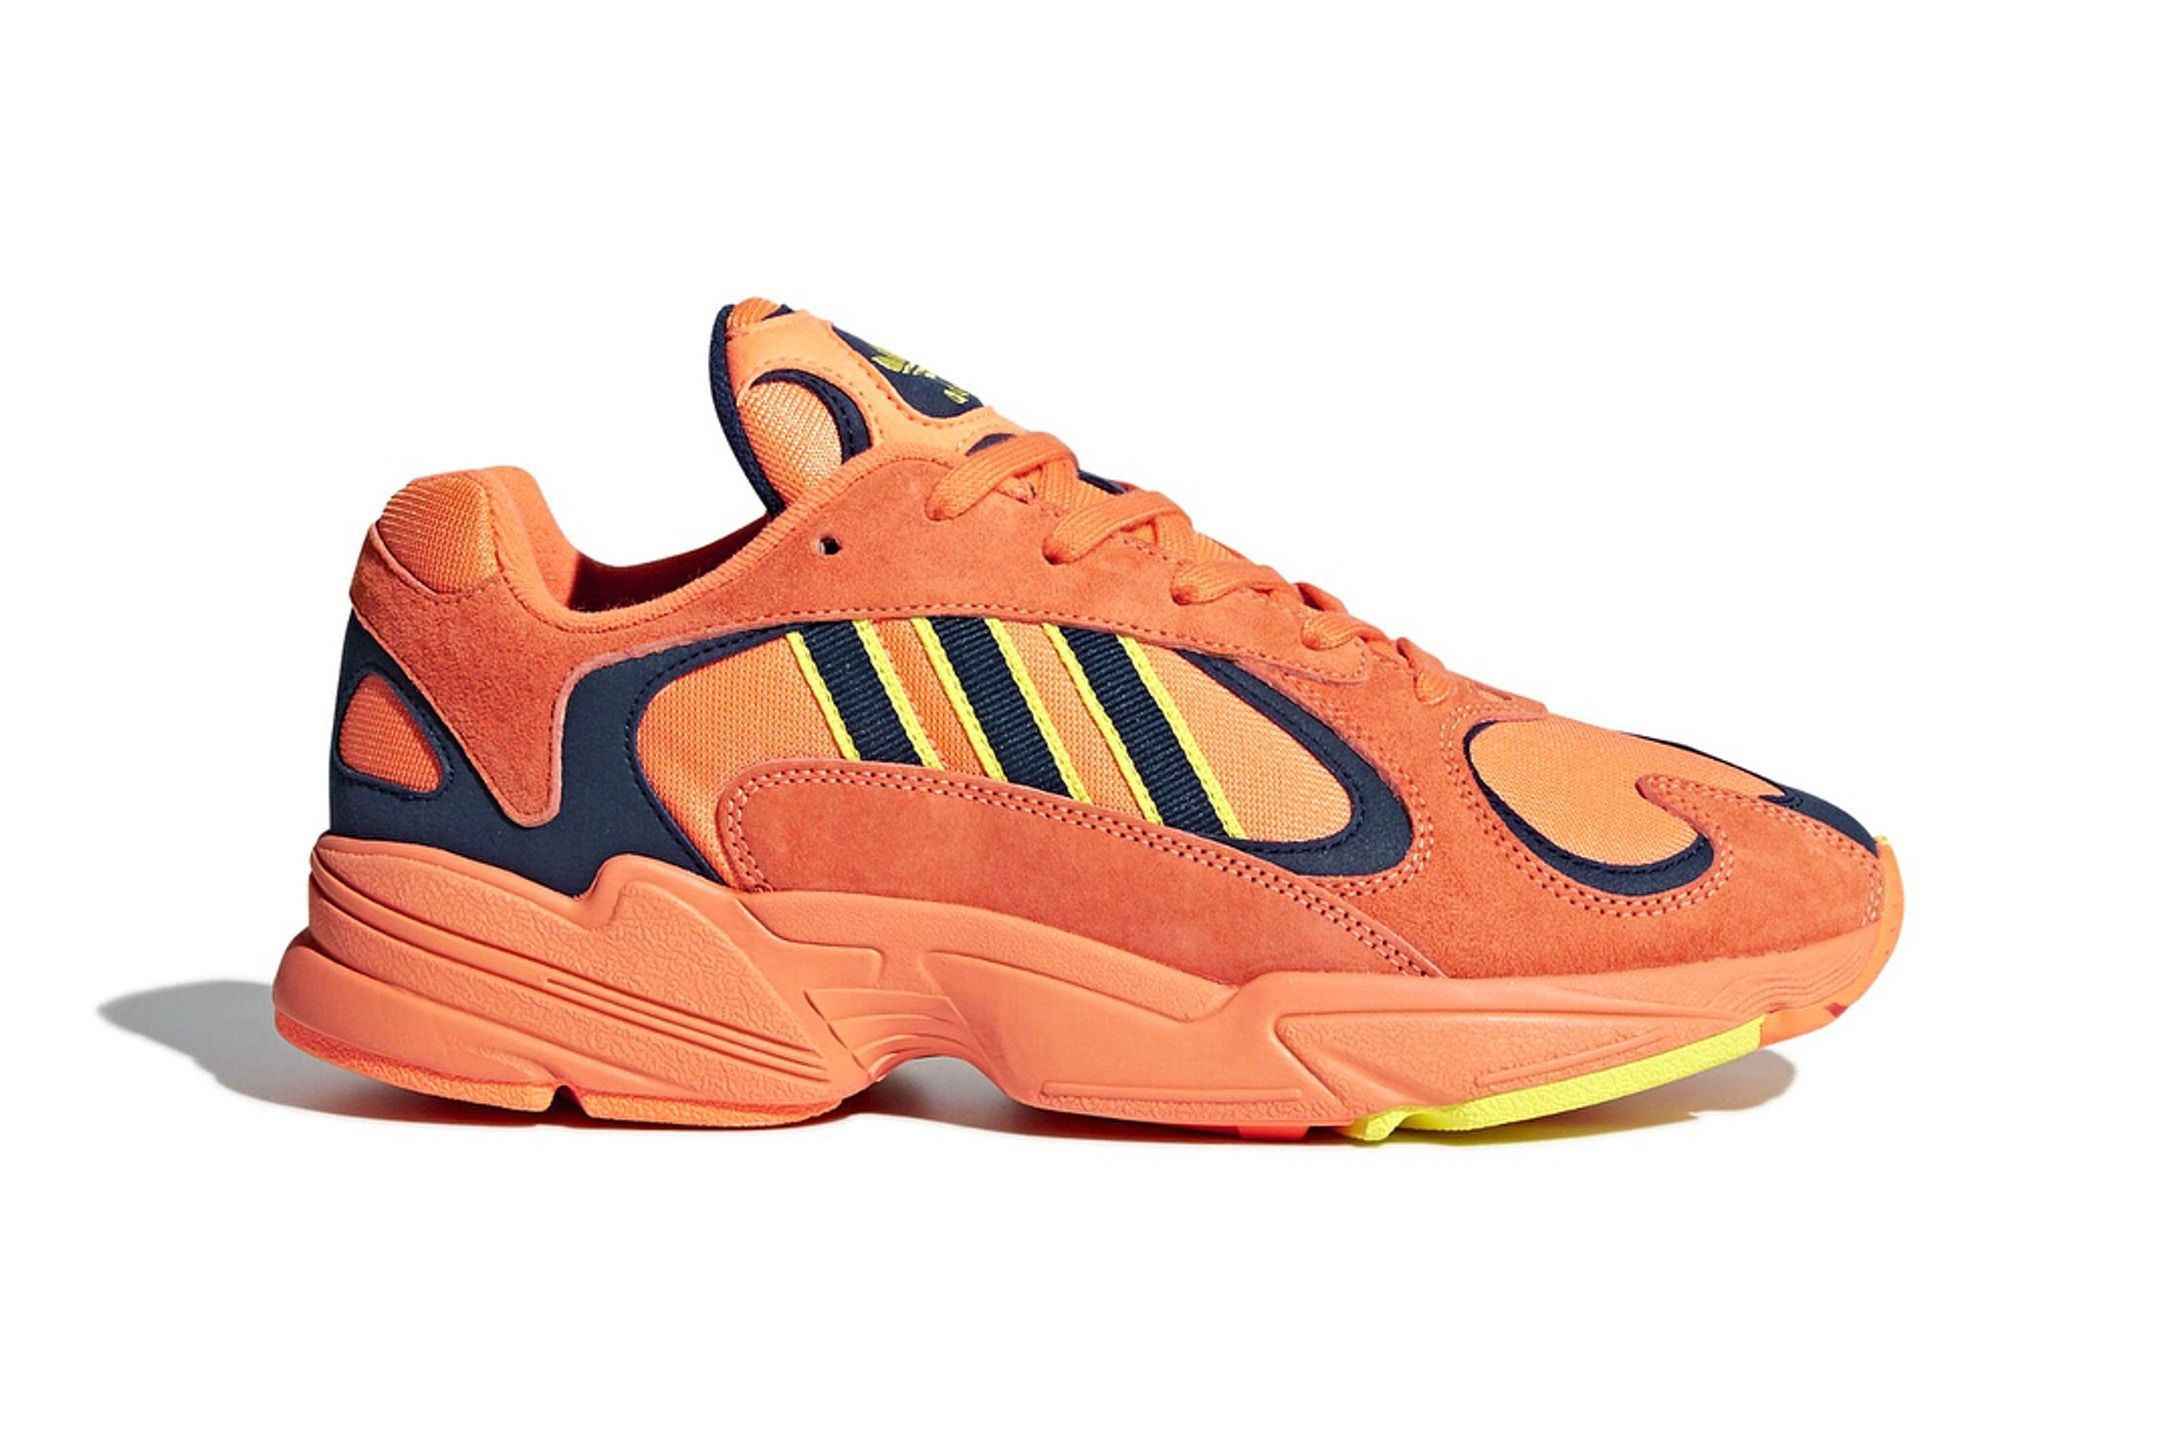 138d61e1463 adidas Originals Yung 1 Orange Release Info Black YEEZY 700 Wave Runner